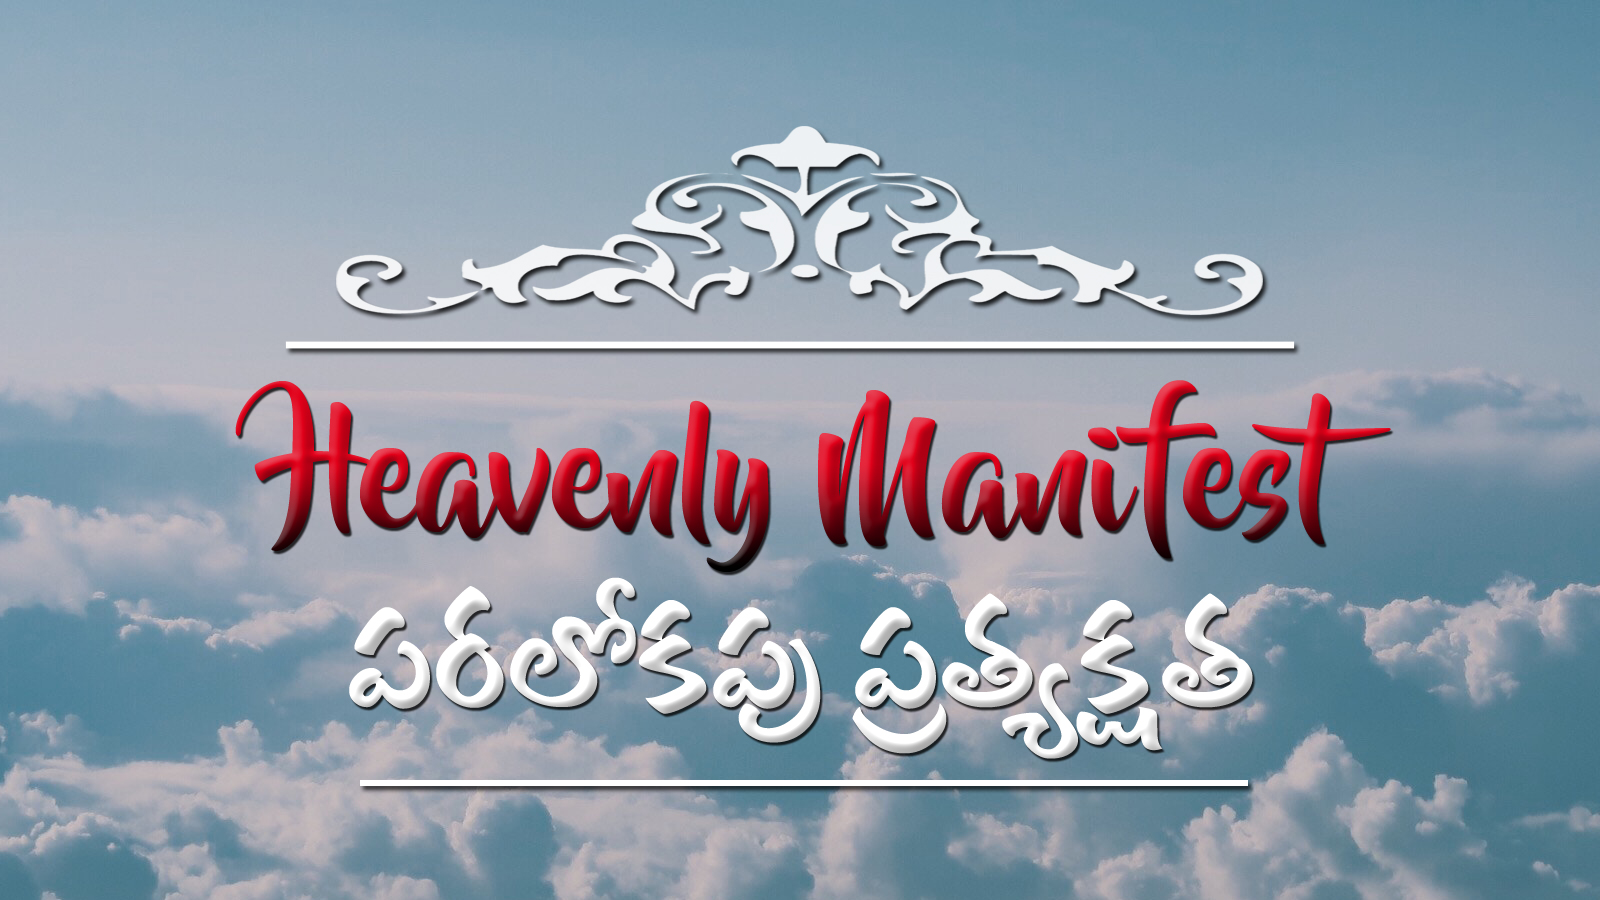 Heavenly Manifest (A284)